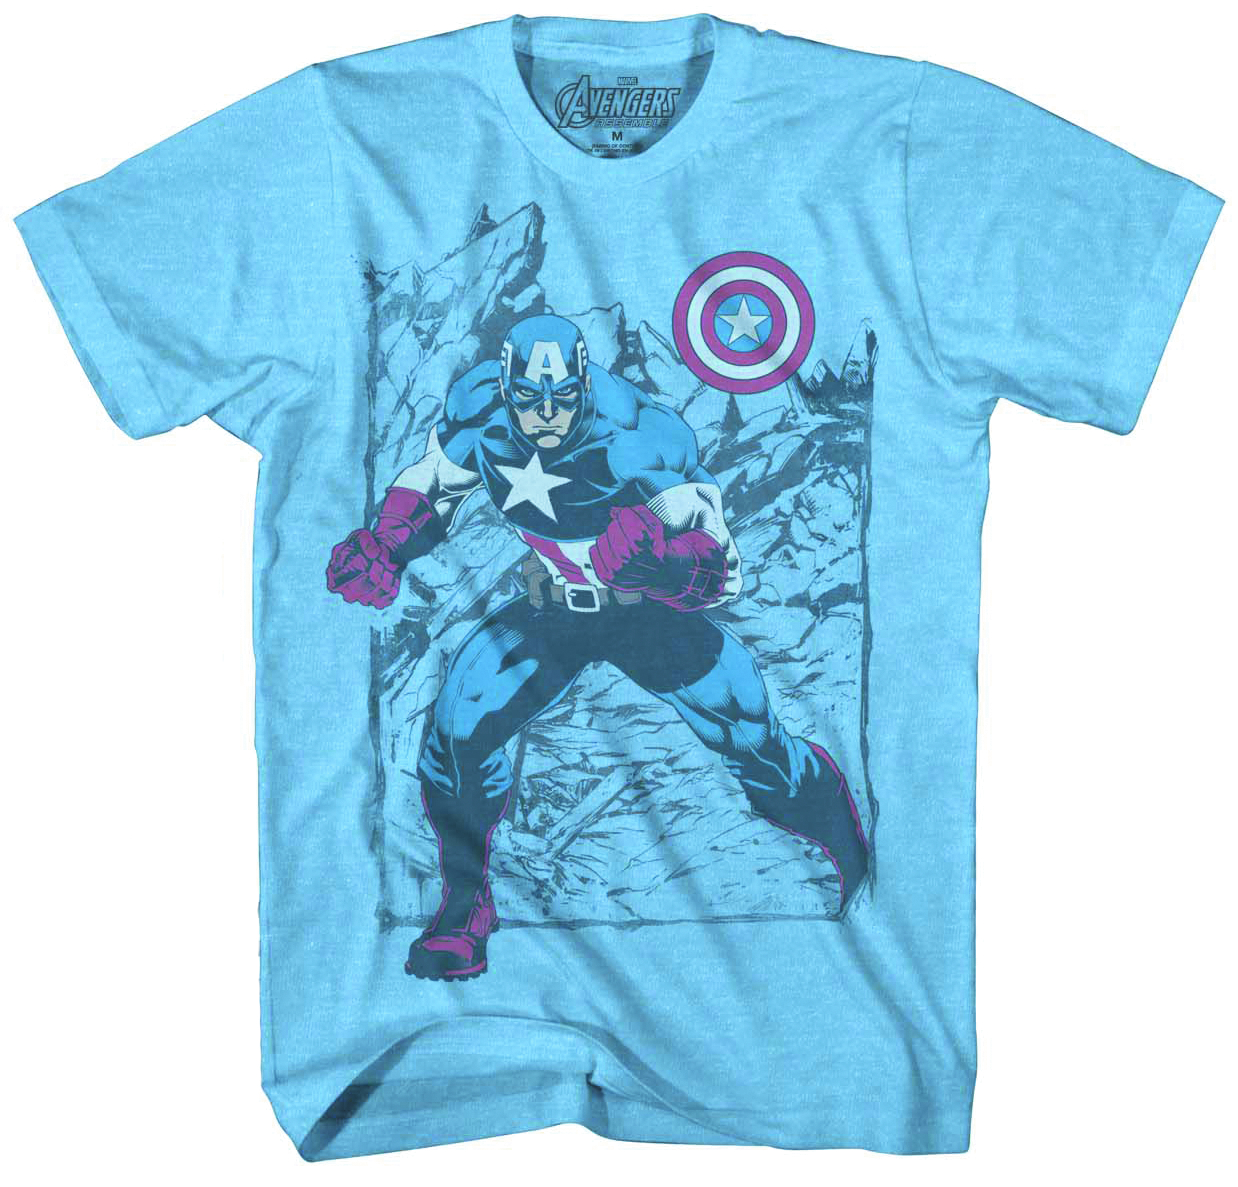 CAPTAIN AMERICA FADED GLORY PX BLUE T/S SM